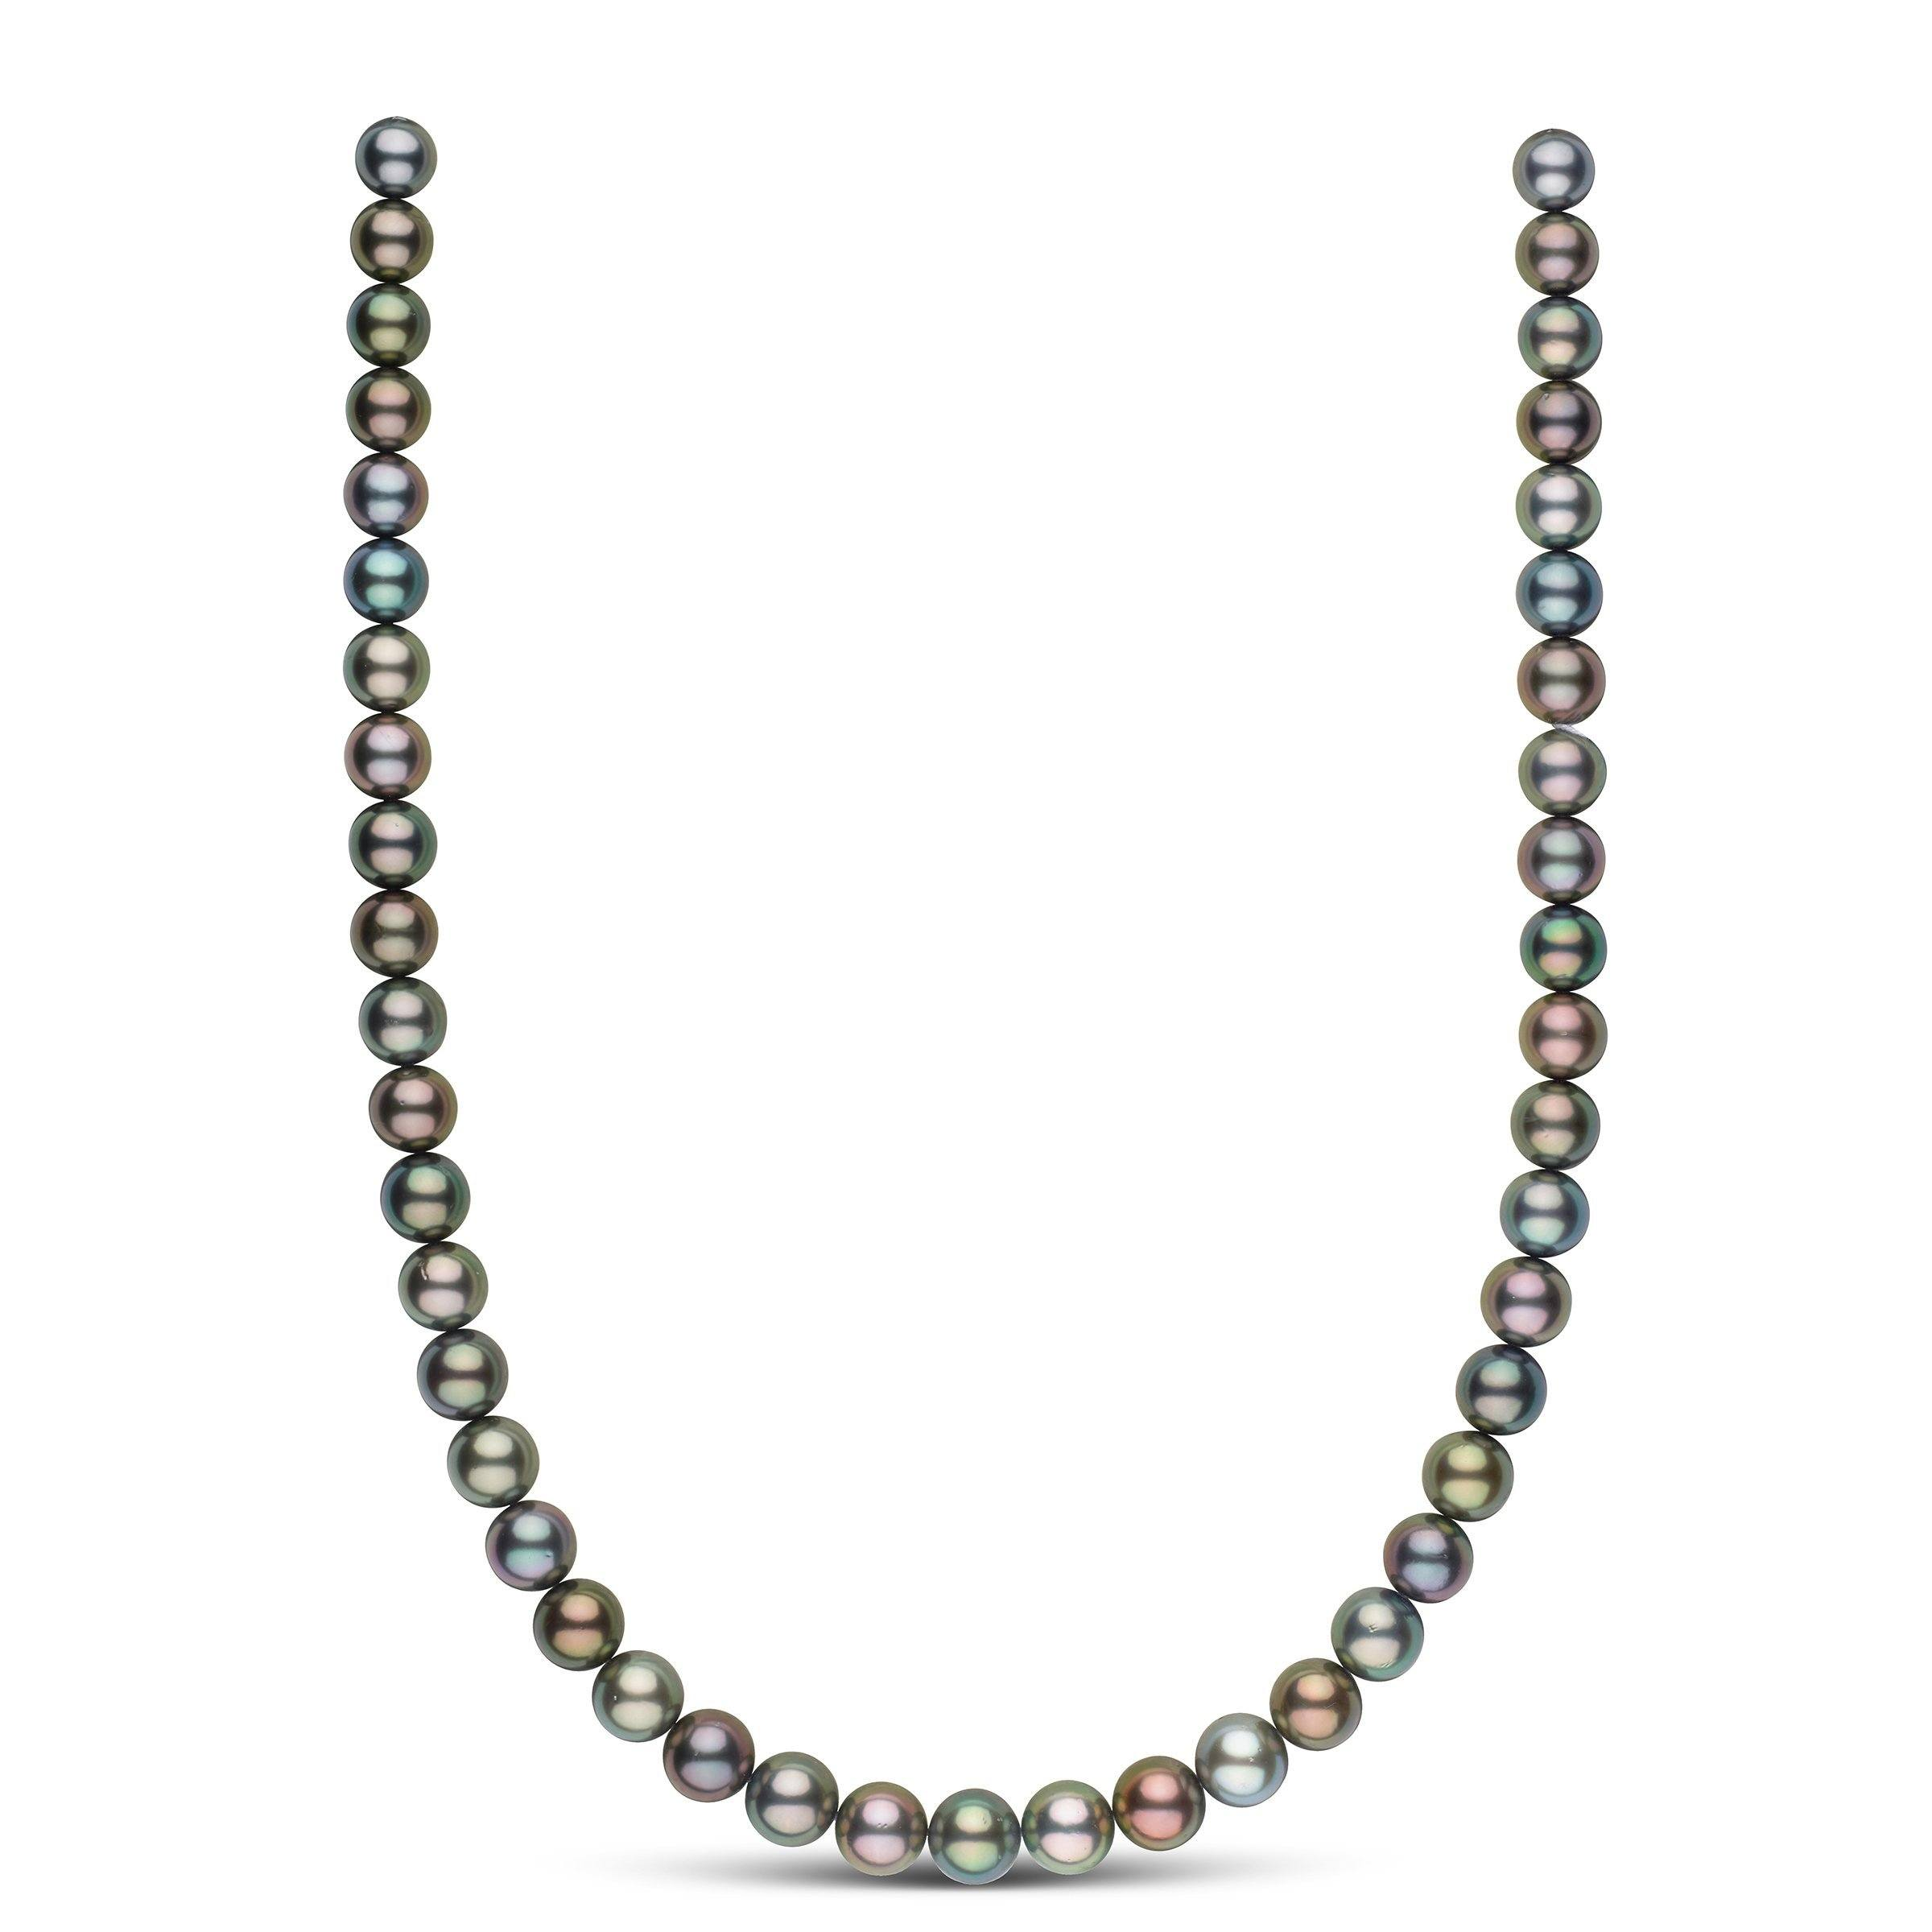 8.5-9.9 mm Round Multicolor Tahitian Necklace